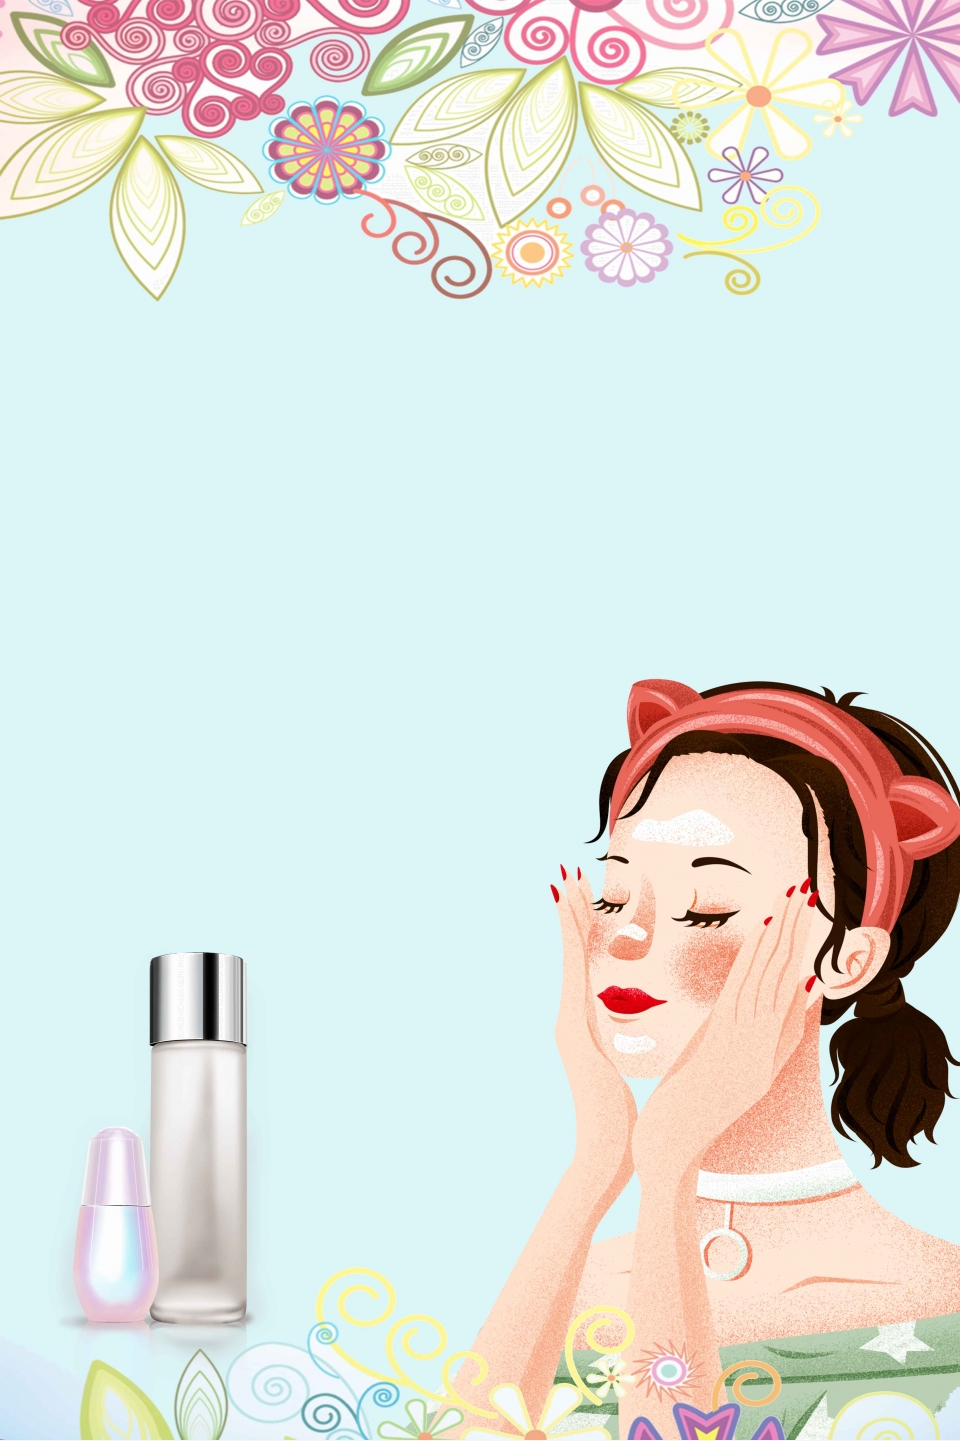 High End Skin Care Cosmetics Beauty Background Tmall Taobao Summer Background Image For Free Download